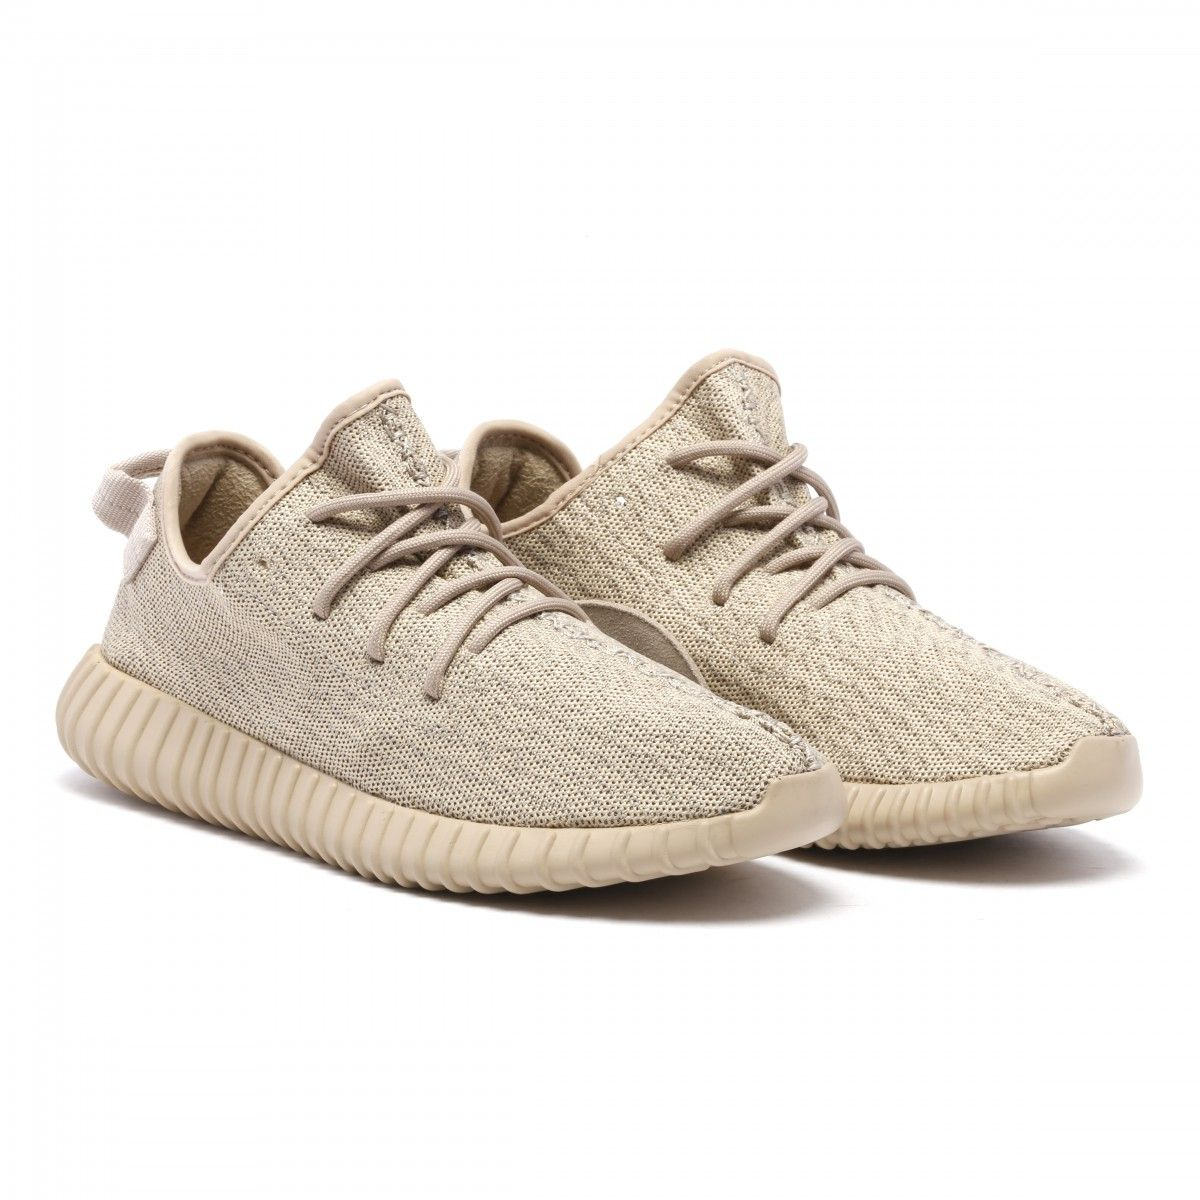 reputable site 5c6ea db205 Yeezy trainers dot net review